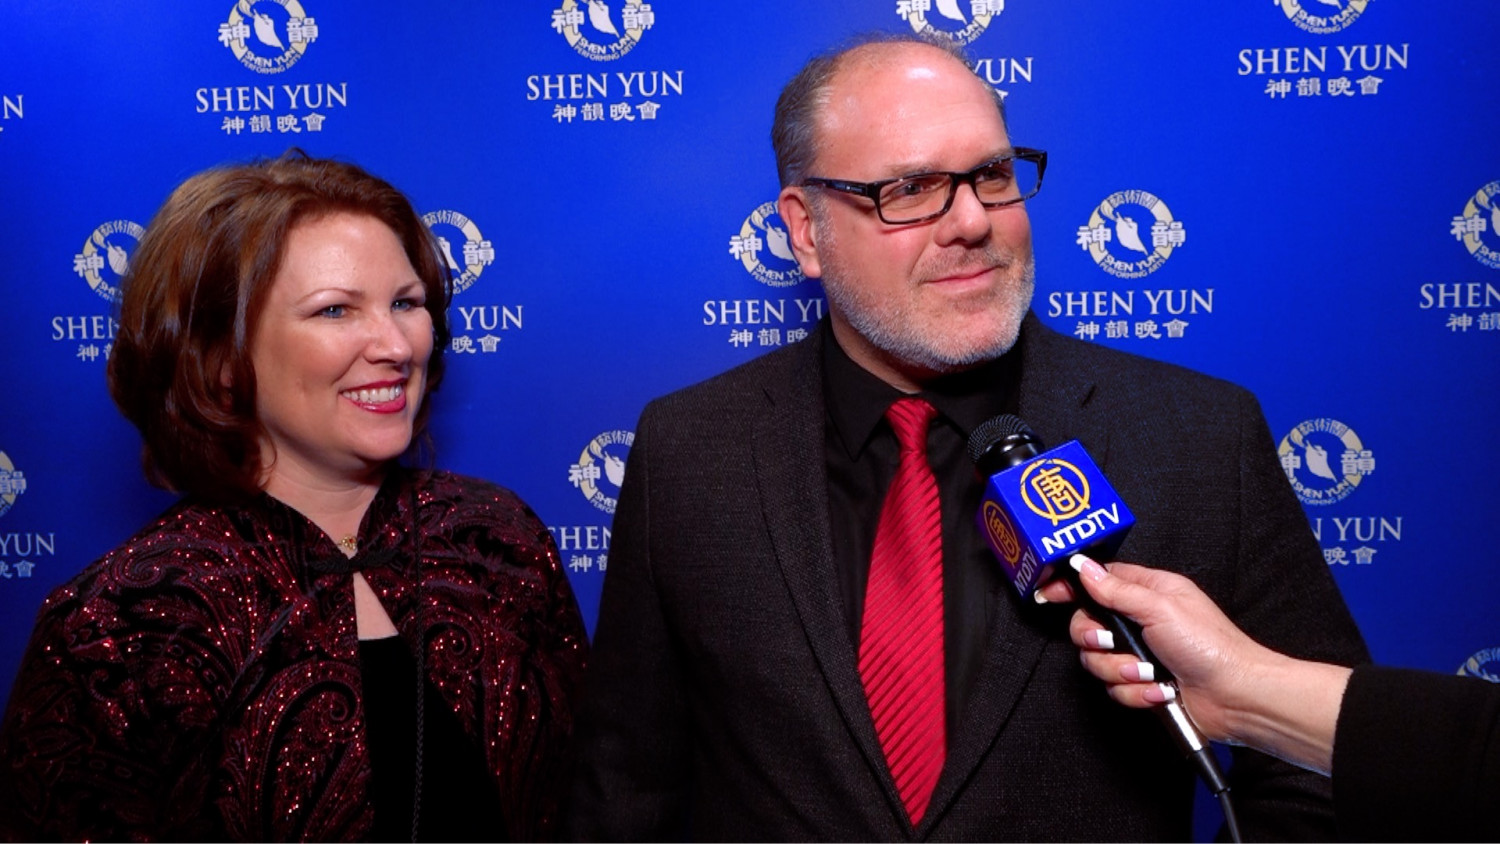 Shen Yun: A Message of Positivity, Goodness, and Love